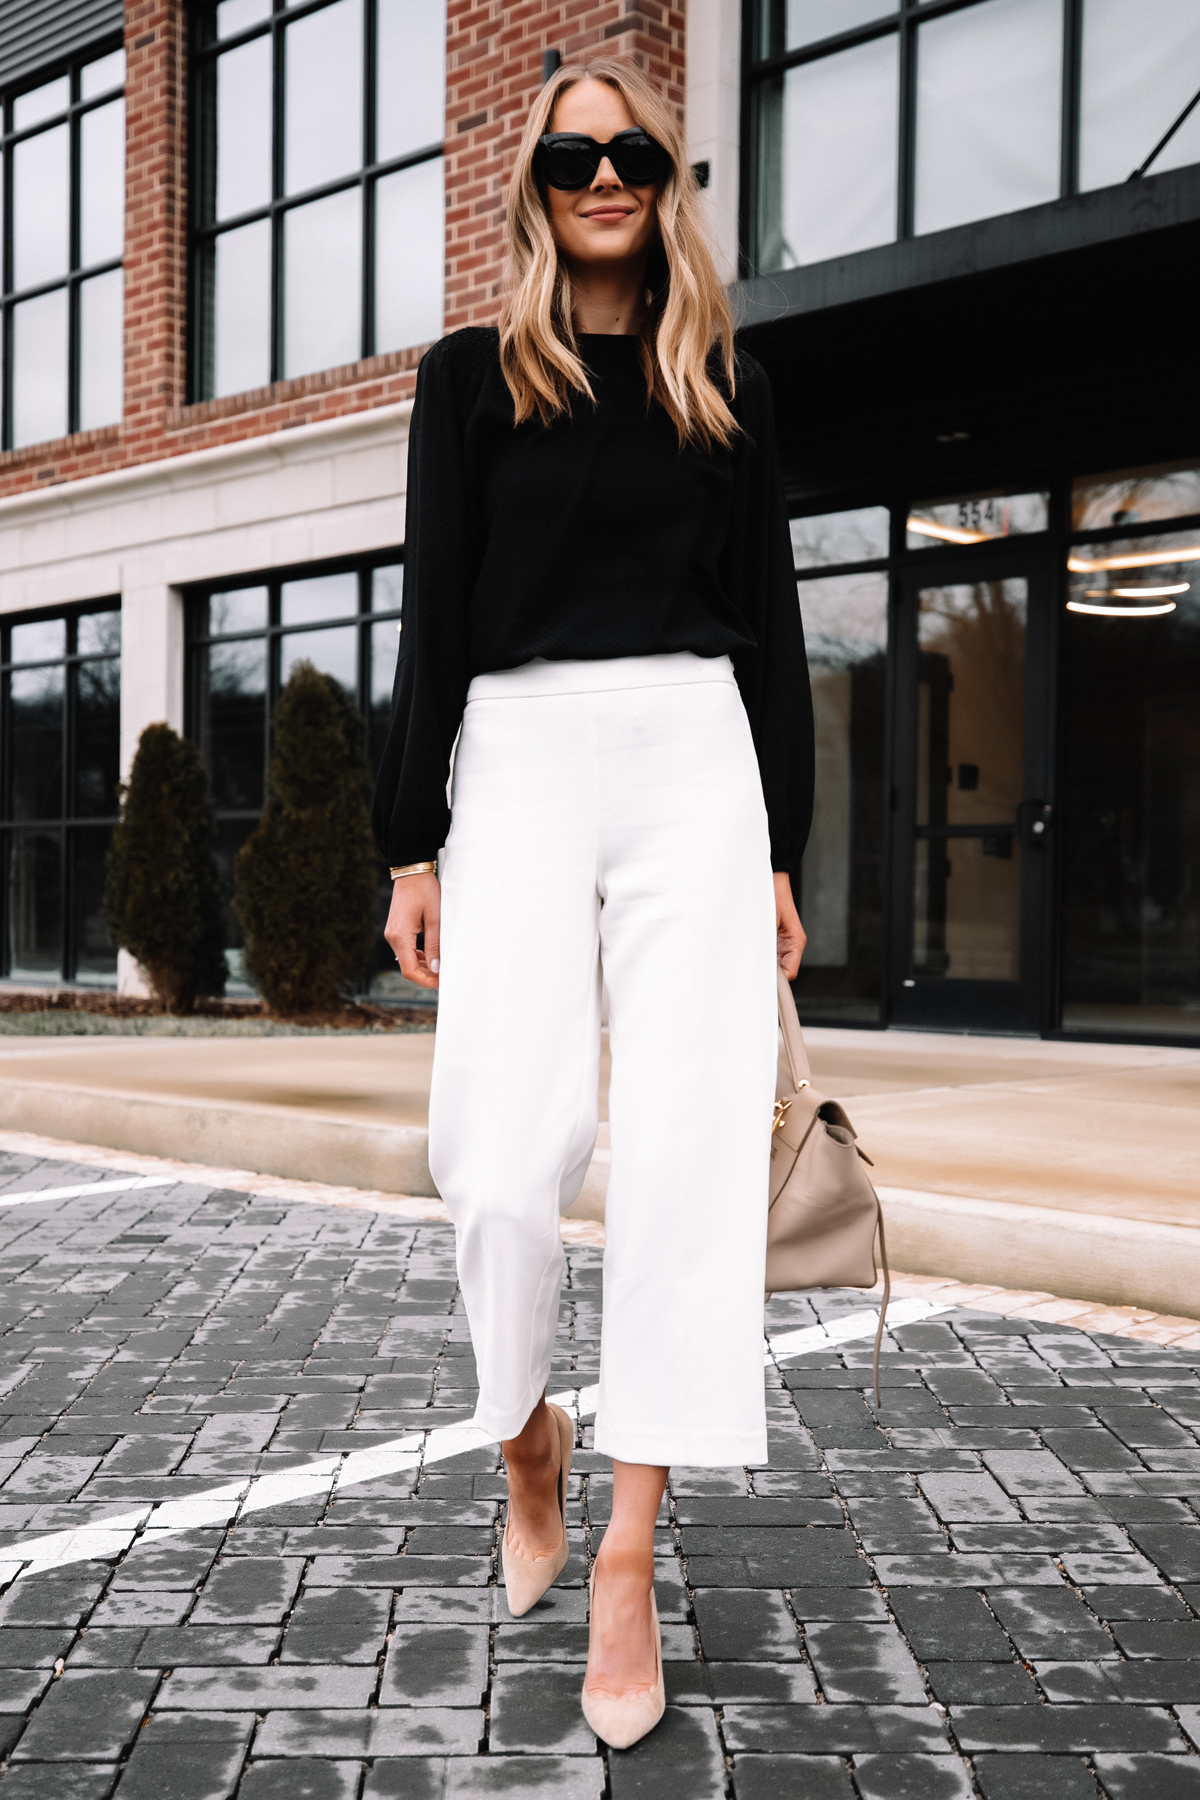 Fashion Jackson Wearing Black Blouse White Pants Beige Pumps Workwear Outfit 2